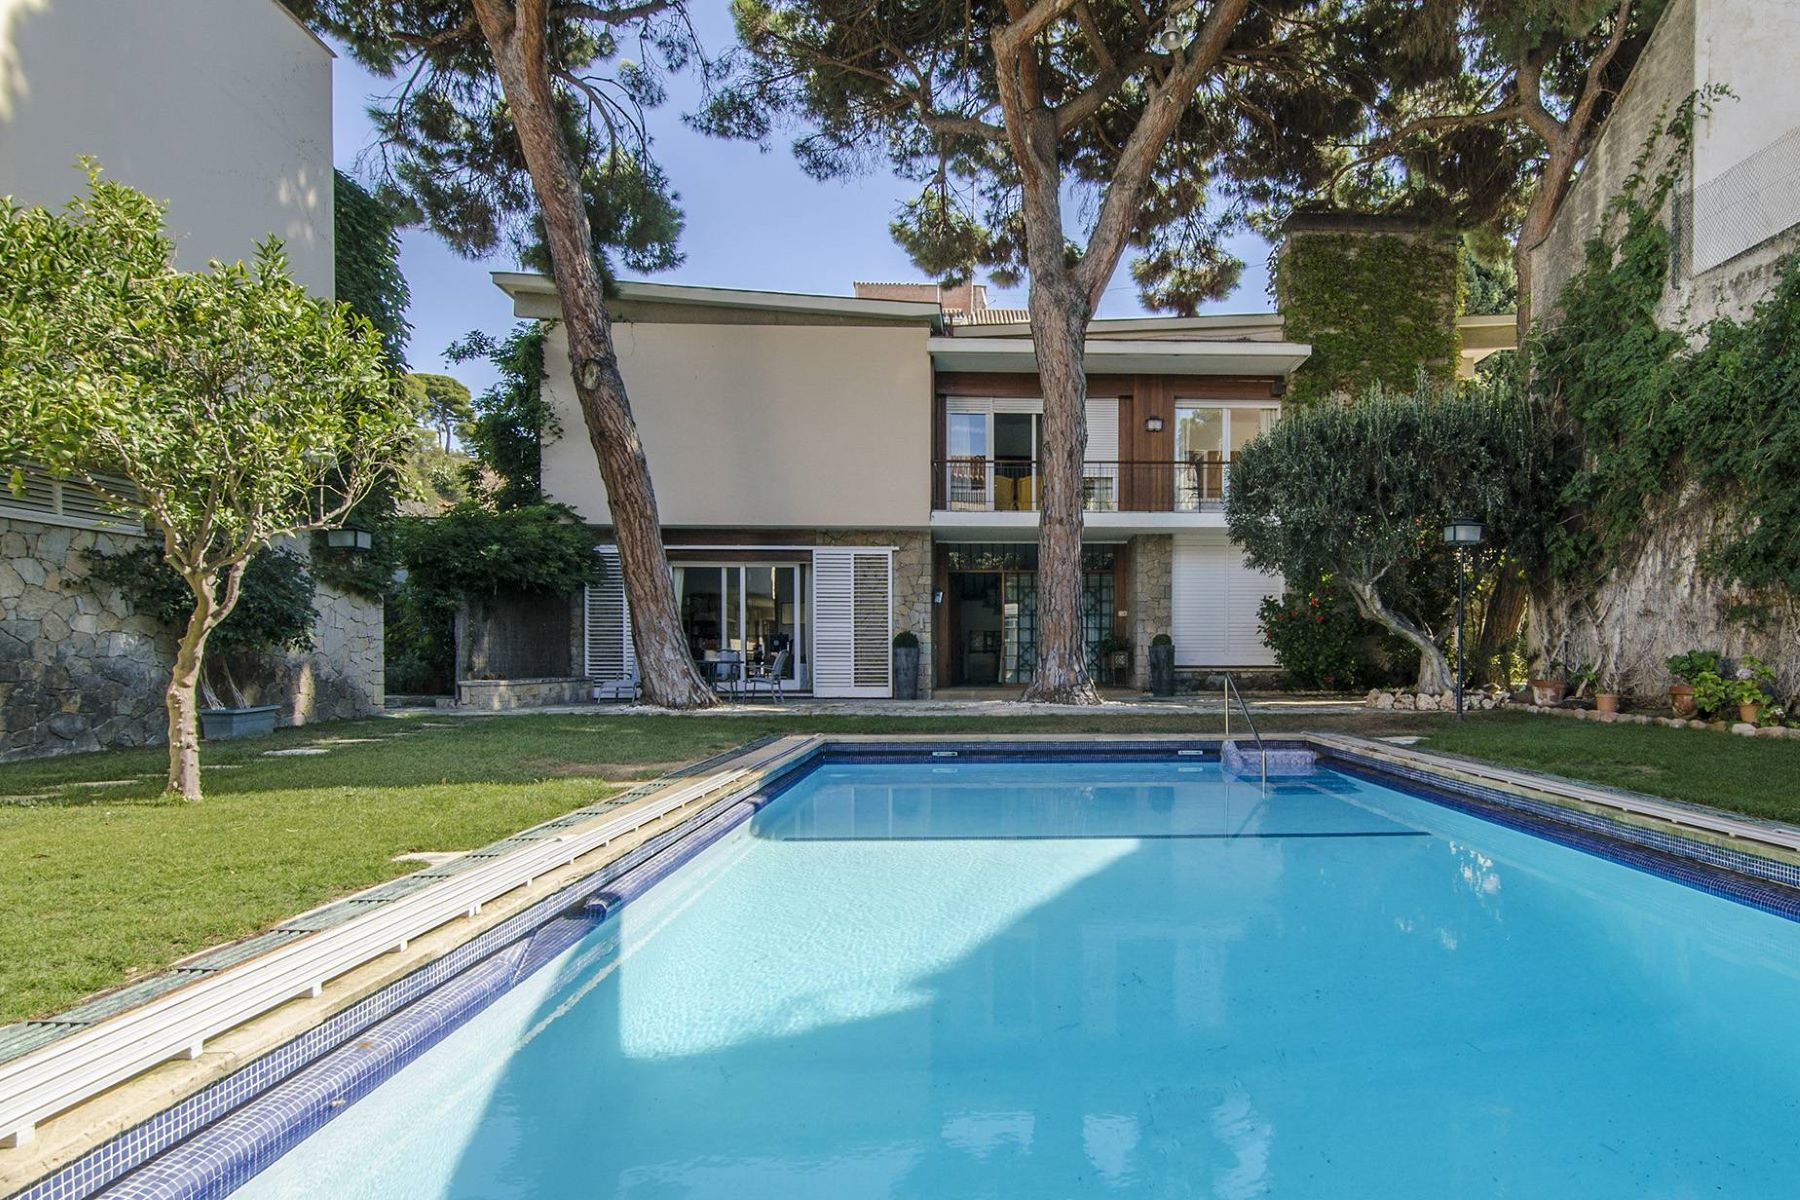 Single Family Home for Sale at A Luxury Seafront Property in Caldes d'Estrac Sant Andreu De Llavaneres, Barcelona, 08392 Spain